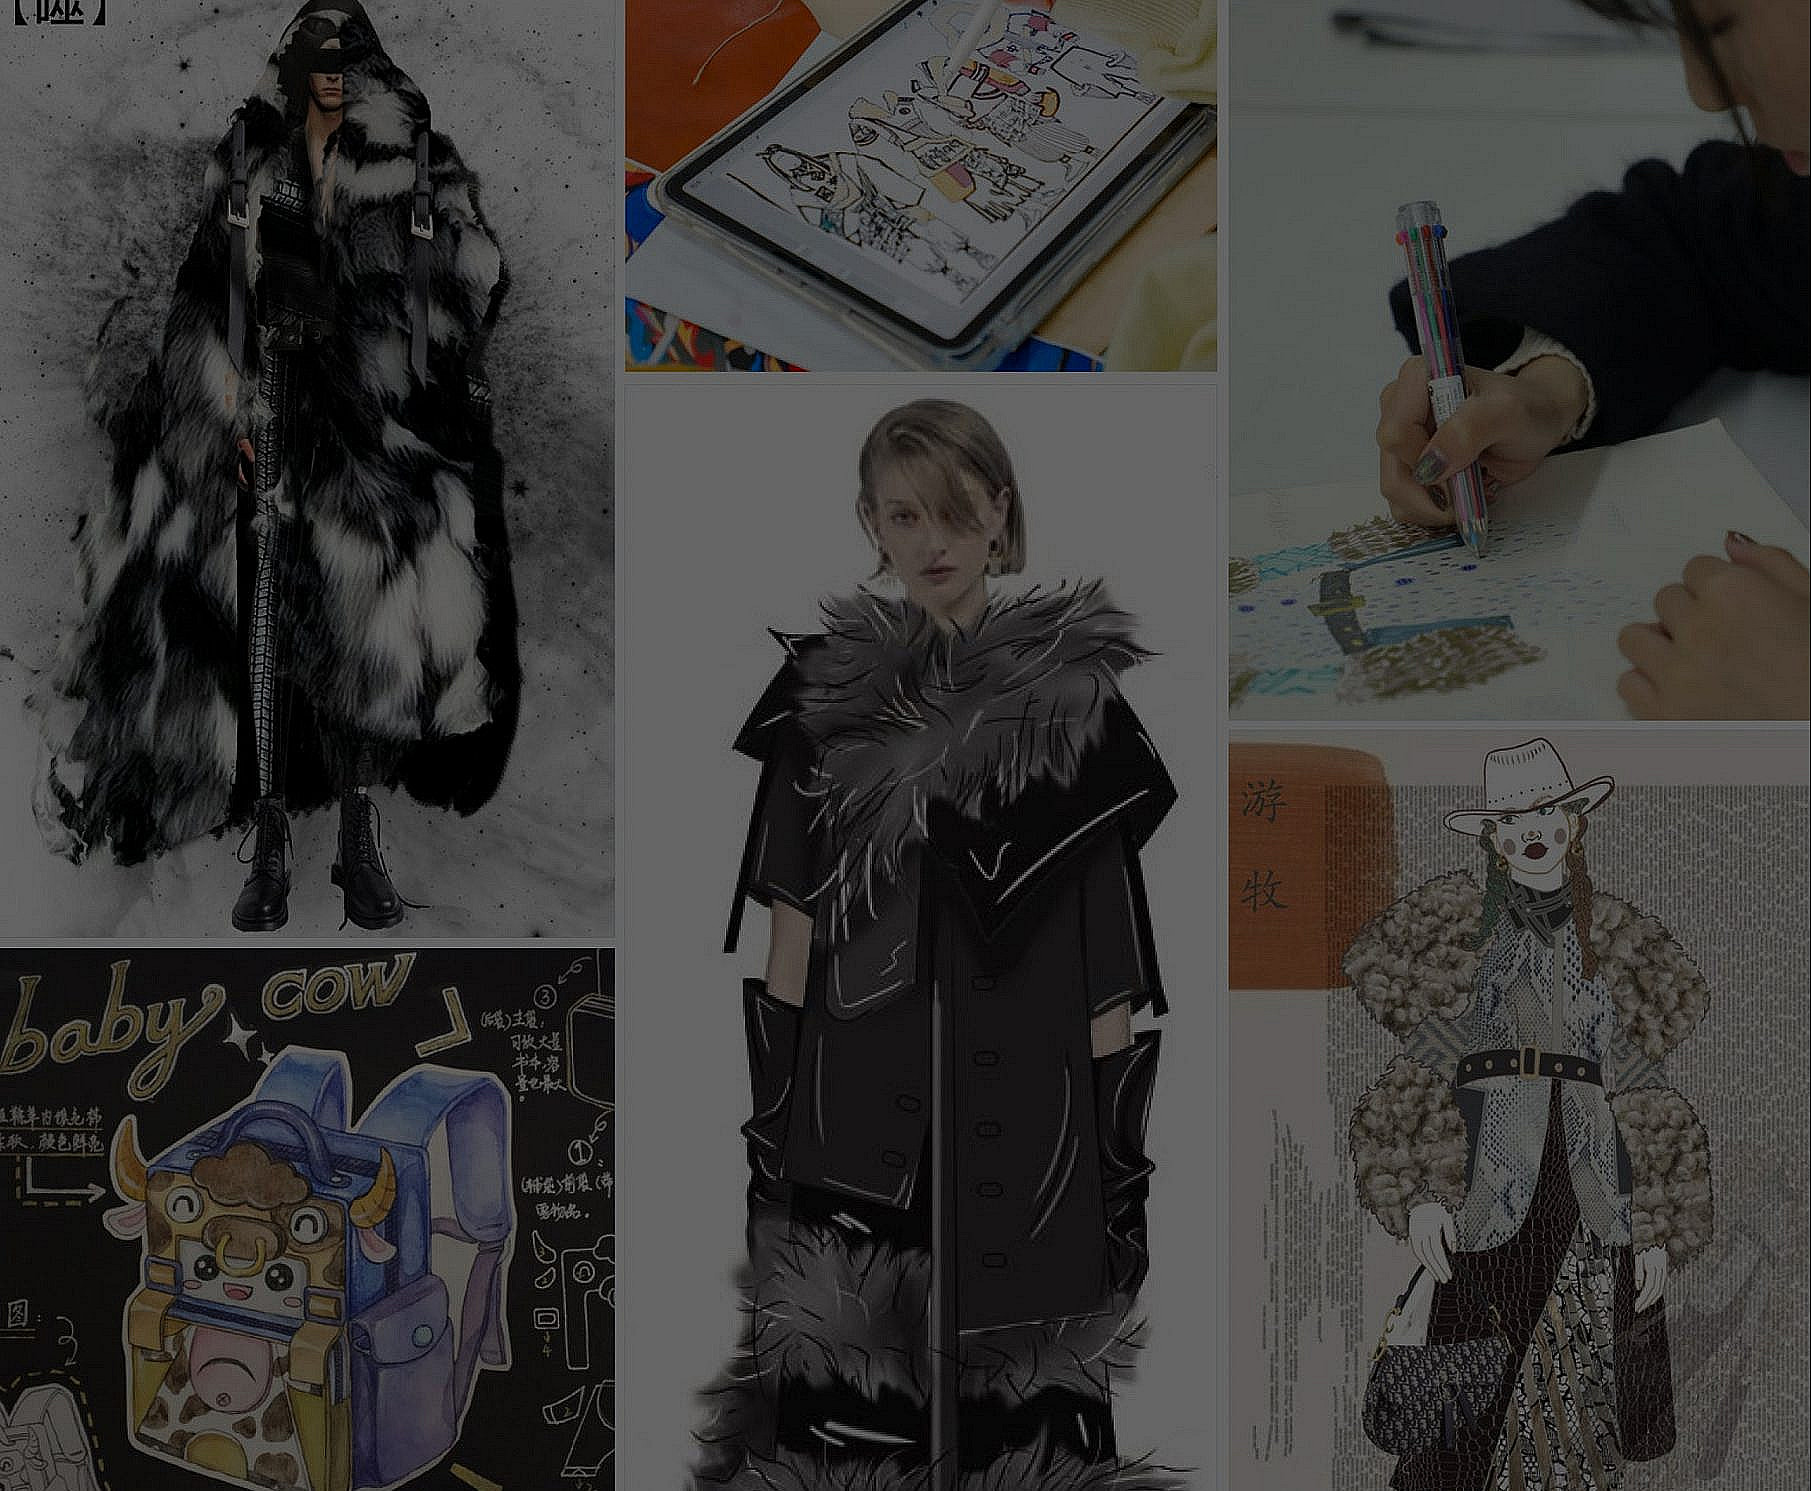 Real Leather. Stay Different student design competition announces first round winners in China